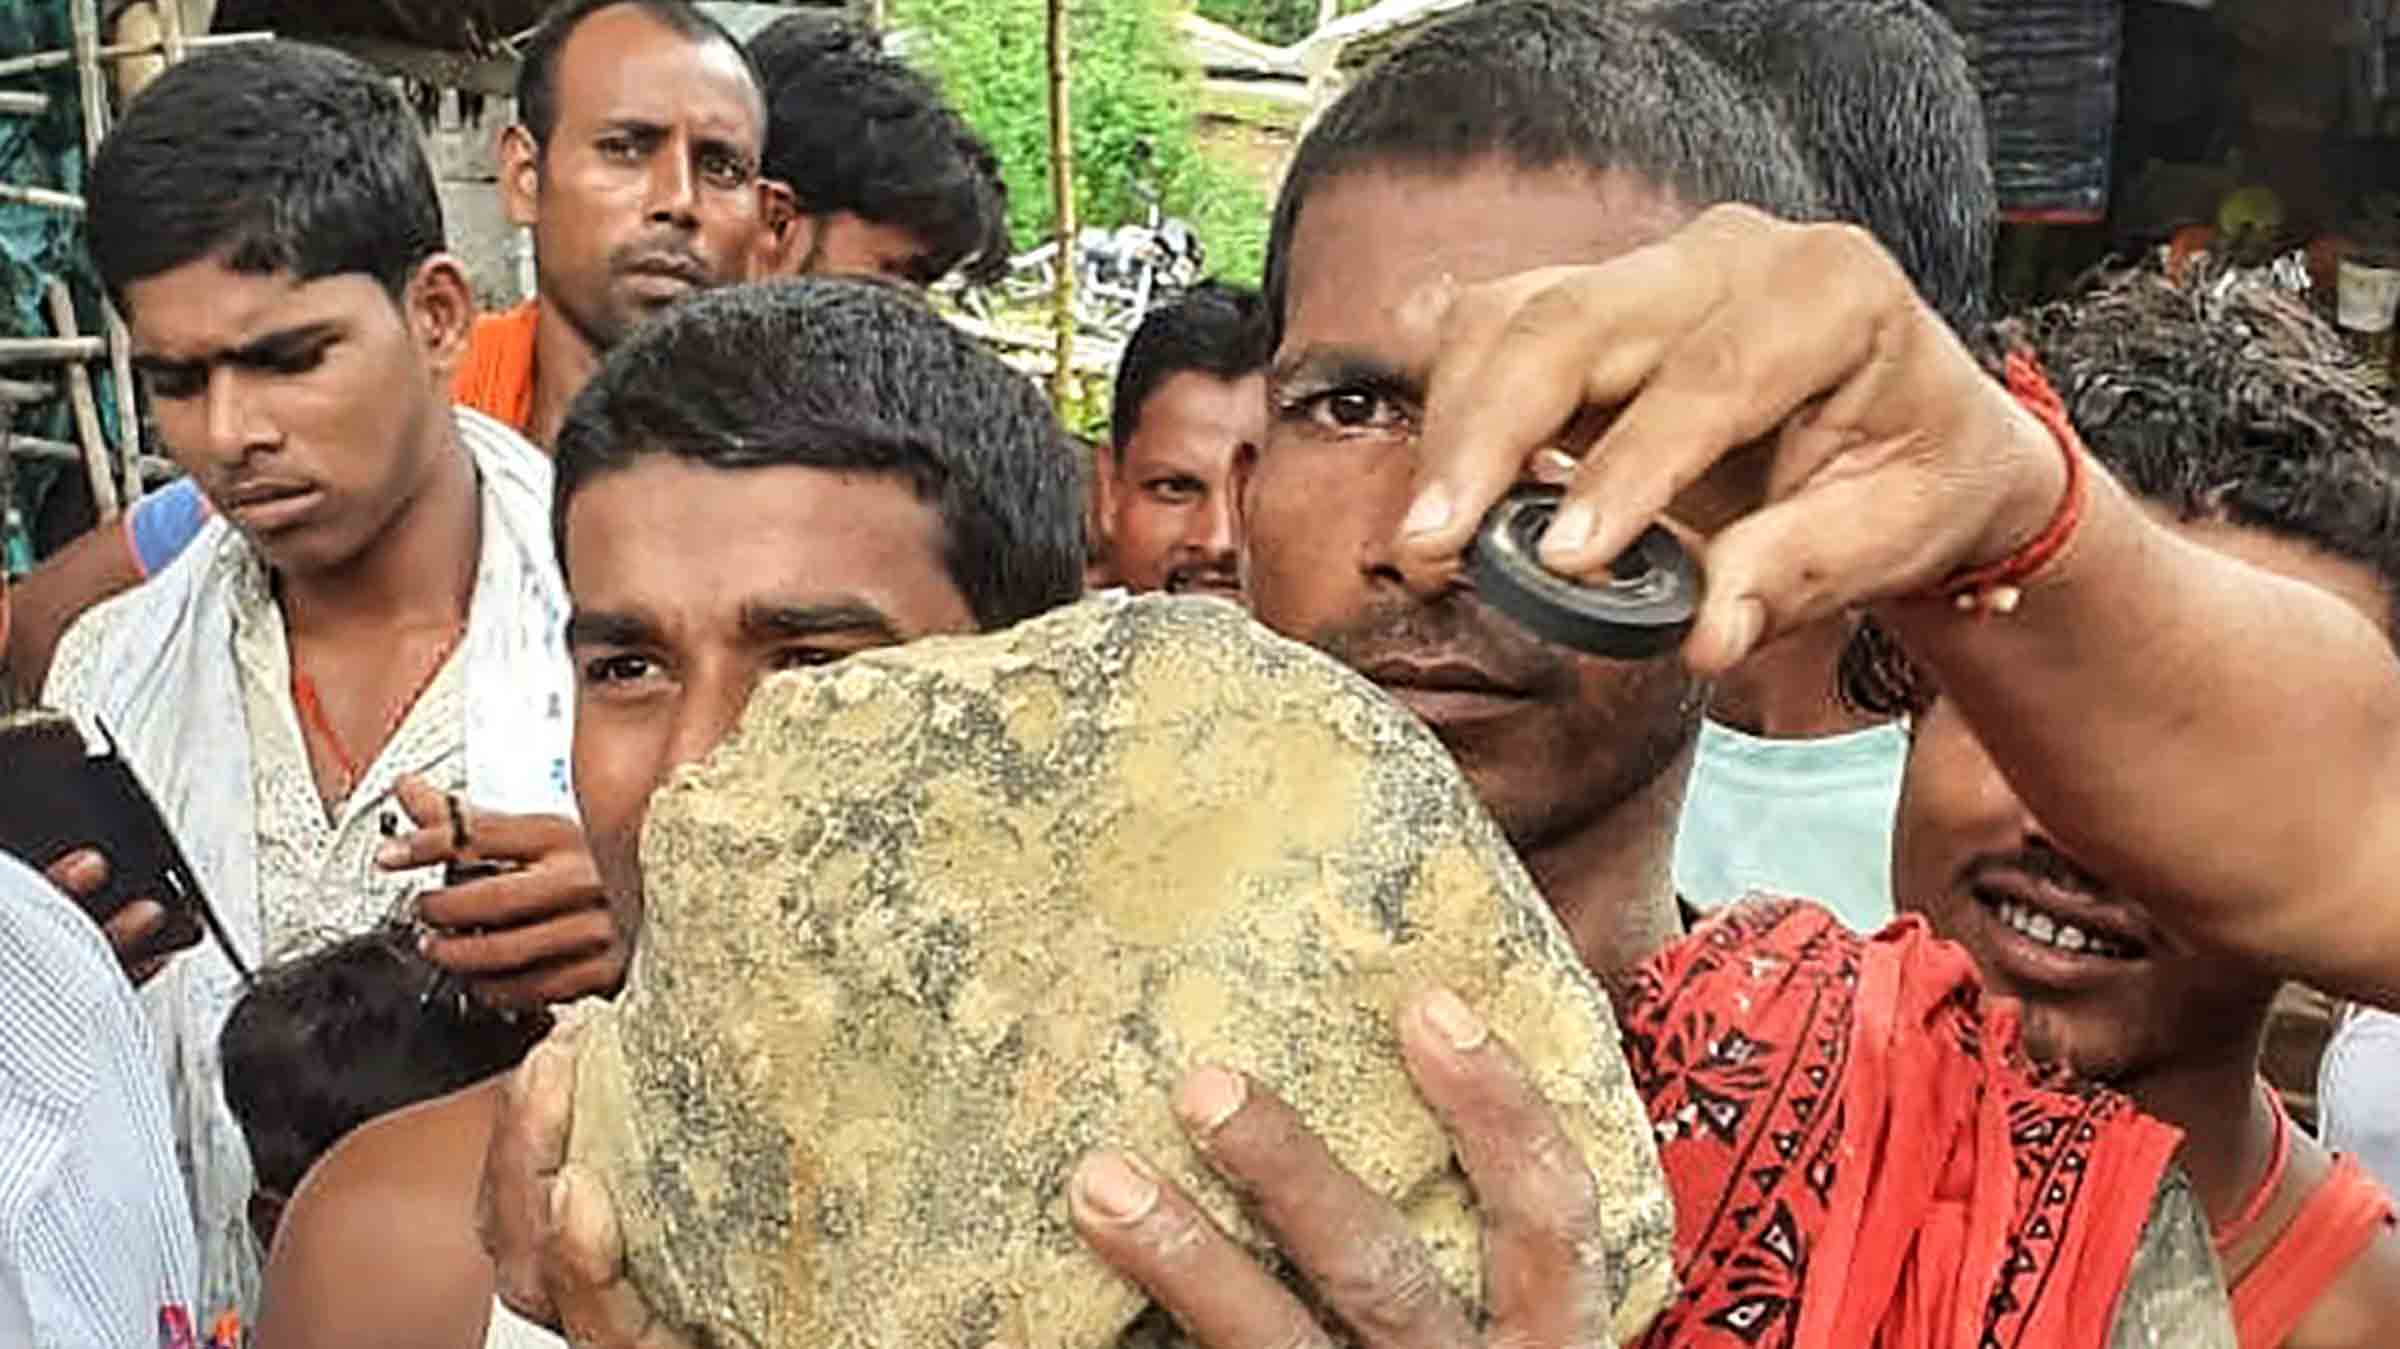 Possible Meteorite Stuns Workers in India Rice Field